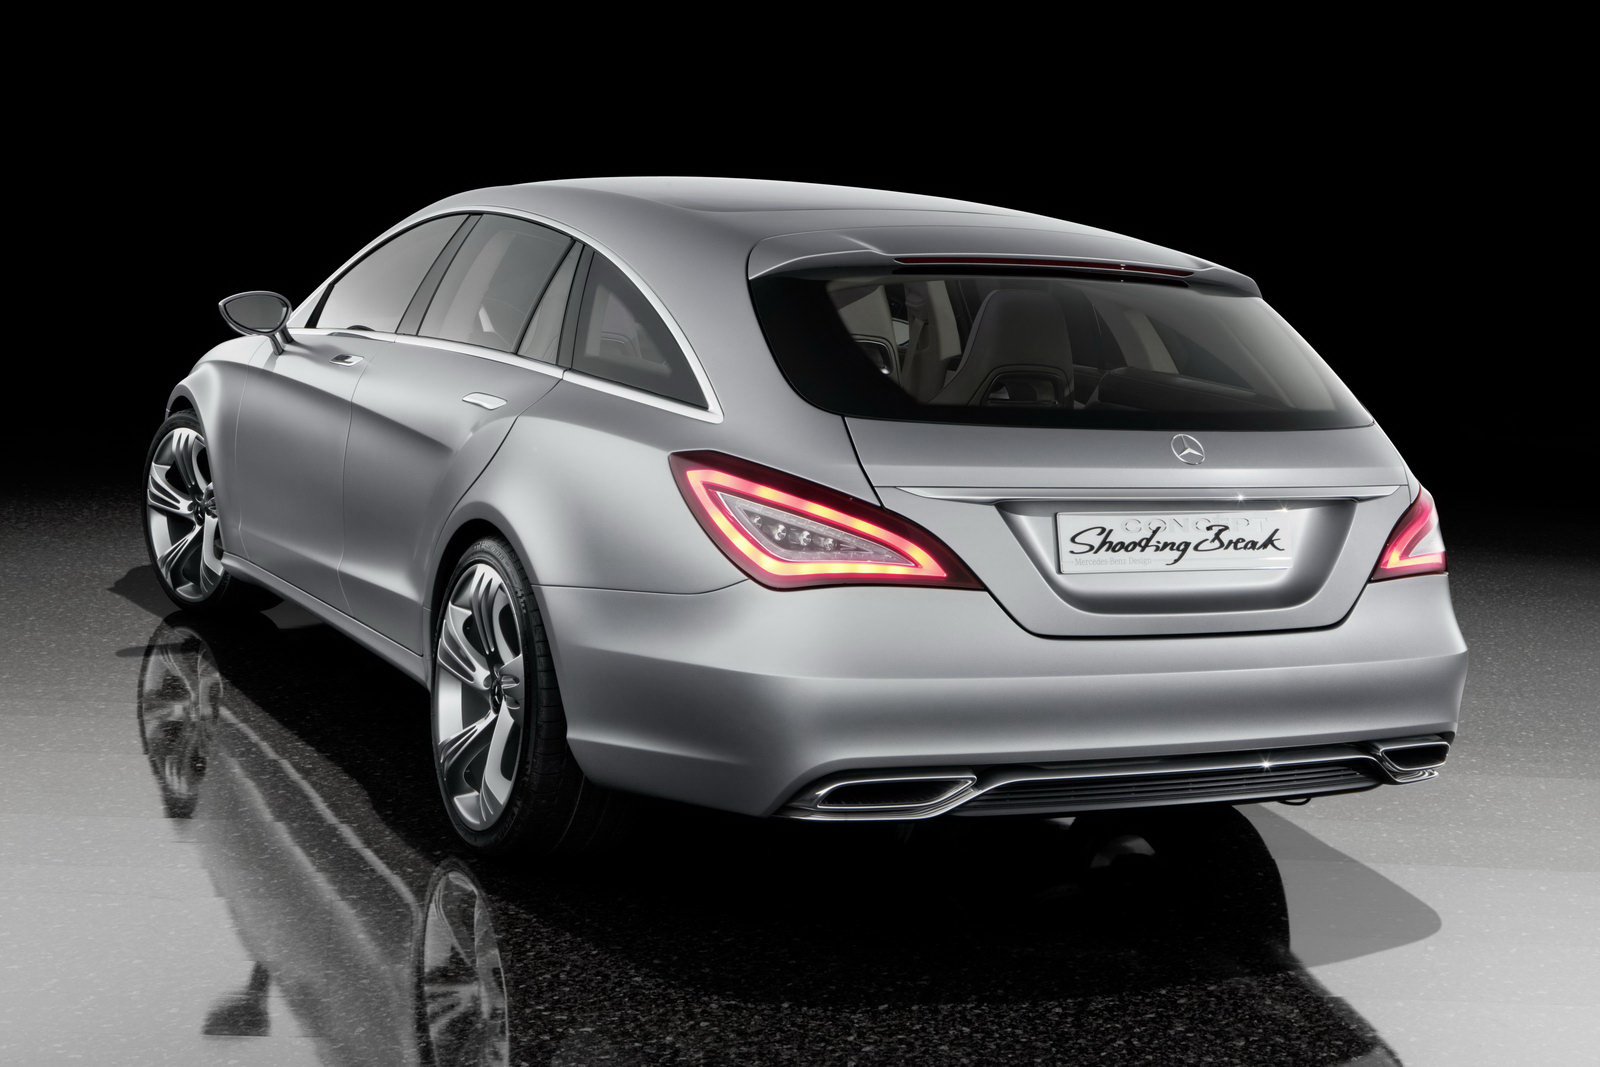 mercedes benz cls shooting brake concept wallpaper. Black Bedroom Furniture Sets. Home Design Ideas